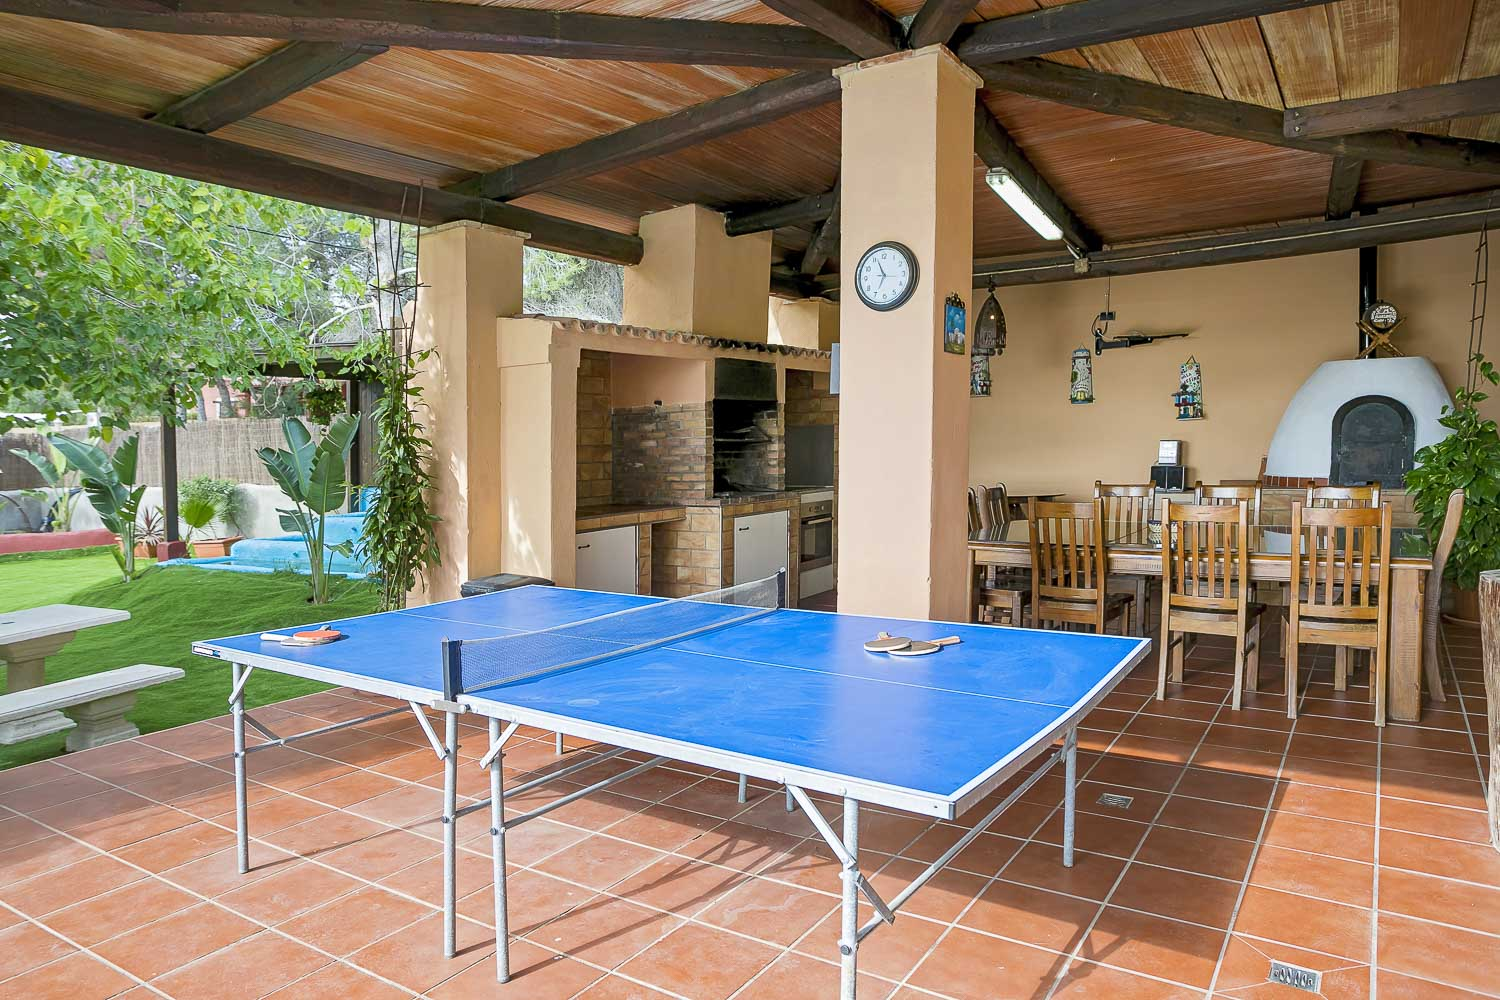 Terarce with a dining room, barbecue zone and a ping-pong table